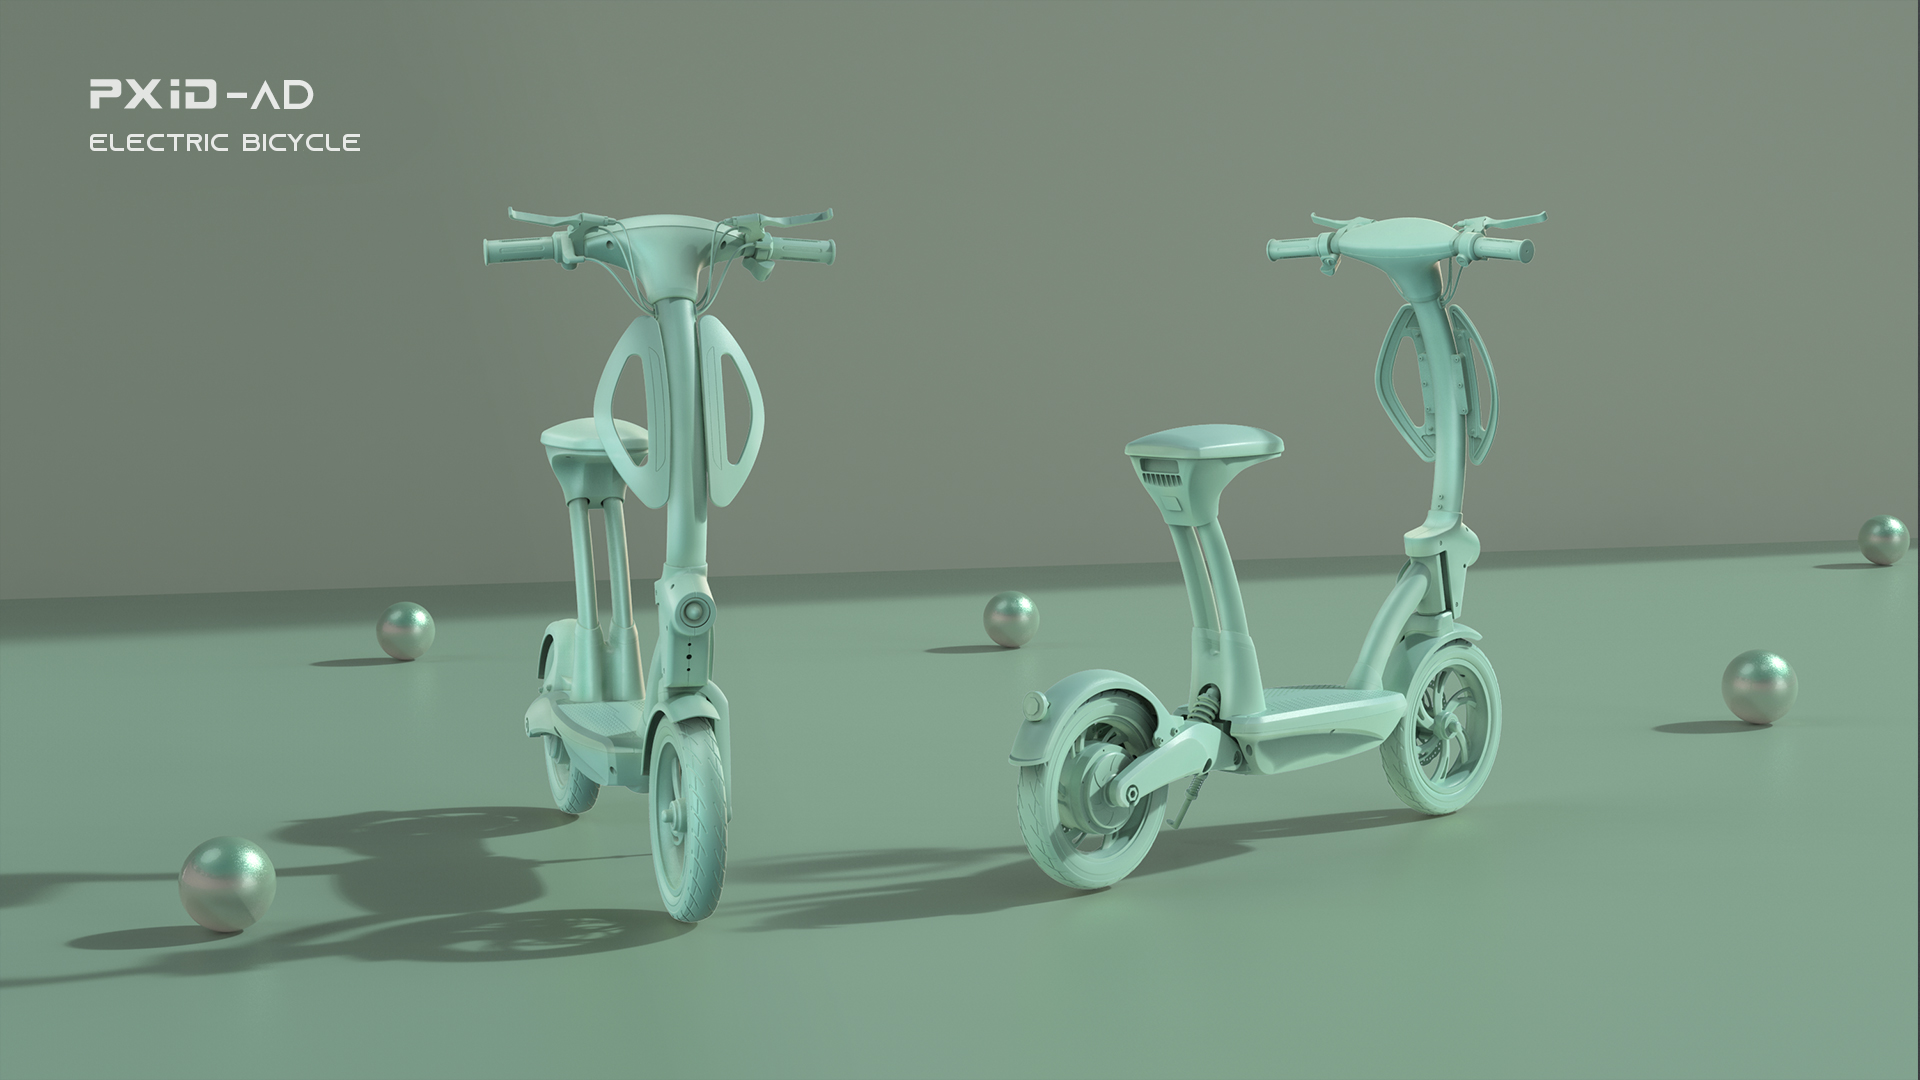 PXID Aiding Electric bike electric bicycle design